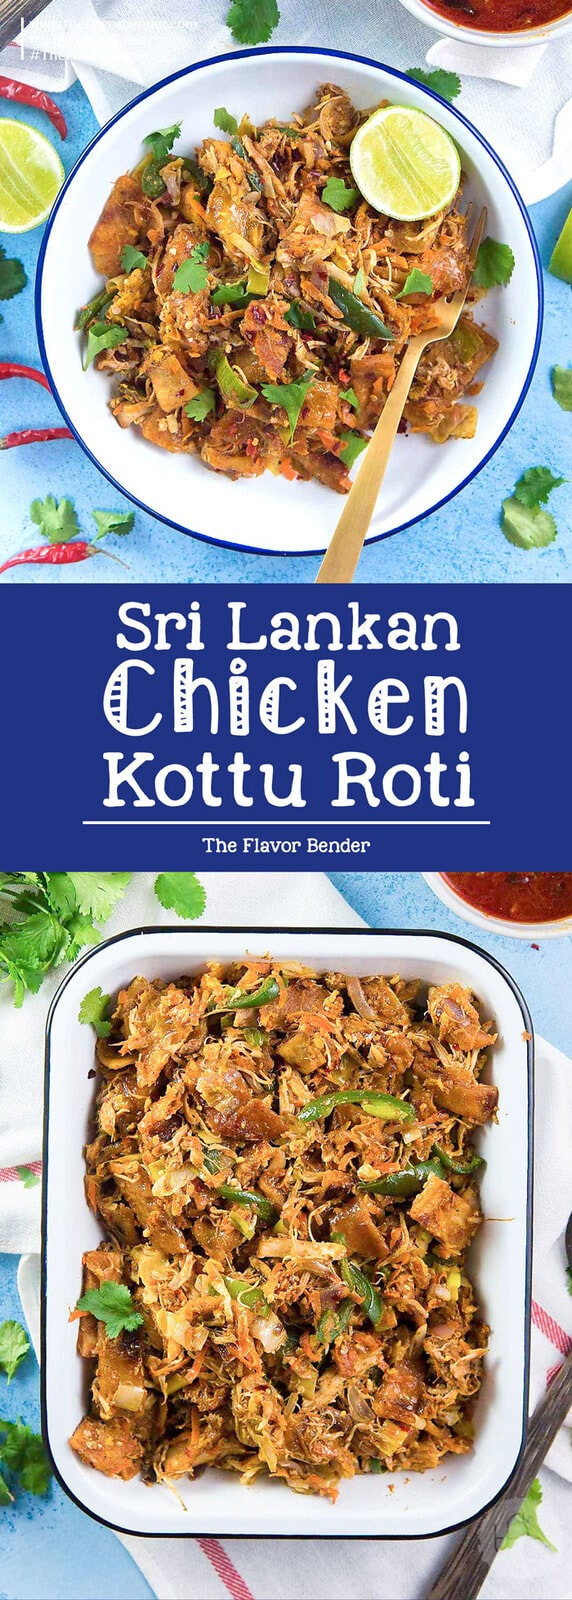 Sri Lankan Chicken Kottu Roti - Stir fried chopped flatbread Sri Lankan style. Koththu roti is a popular Sri Lankan food that you can now enjoy at home. Great way to use up leftover chicken or vegetables too. #SriLankanFood #SriLankanStreetFood #StreetFood #LeftoverRecipes